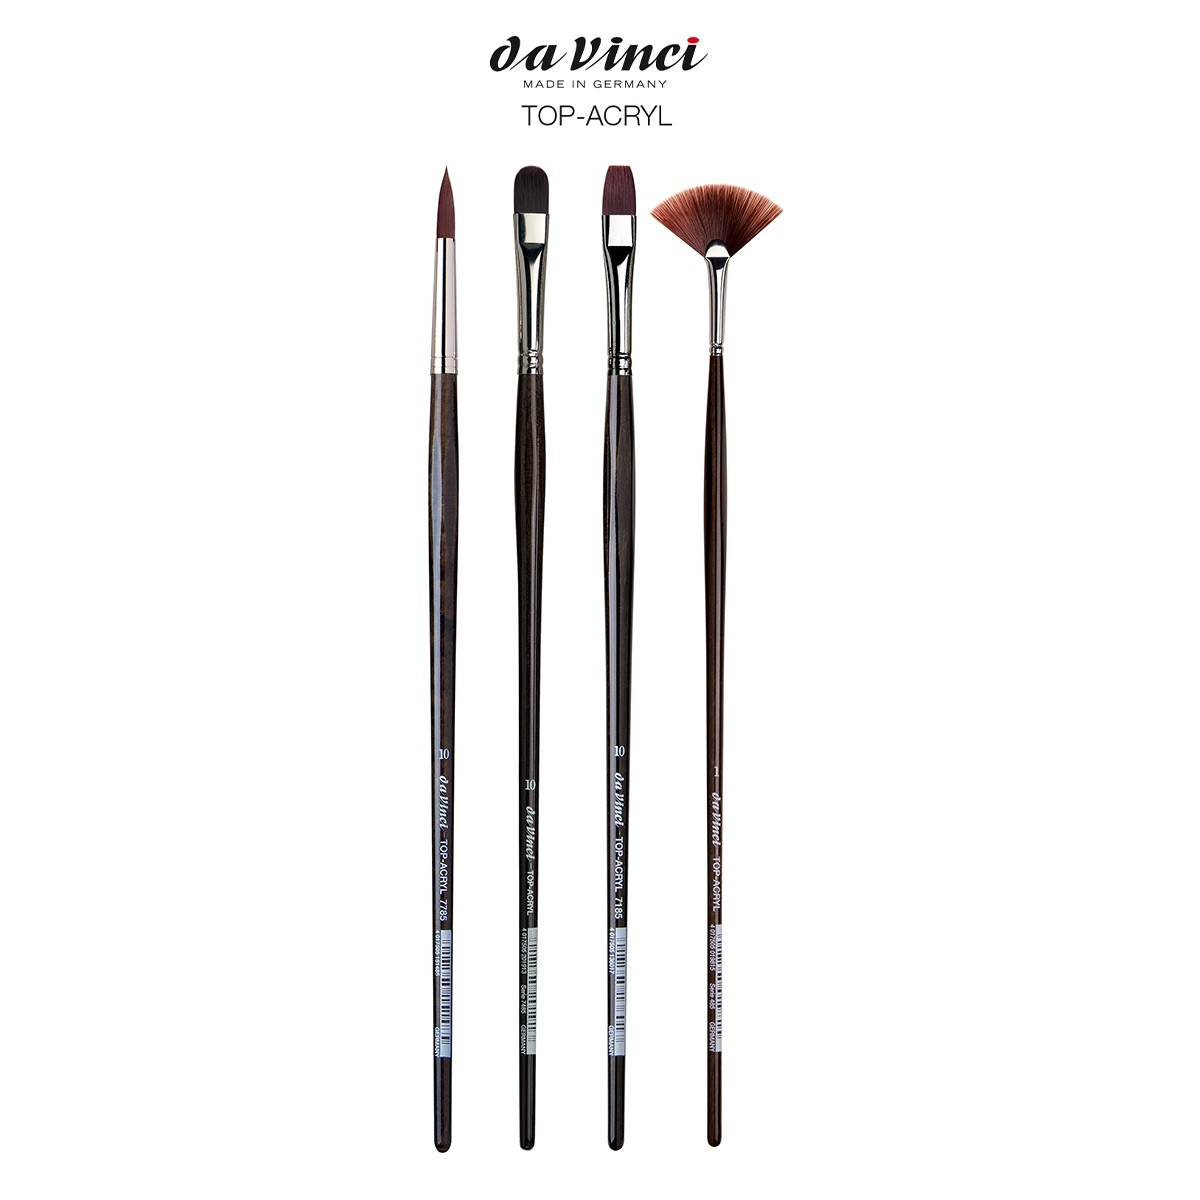 Da Vinci Top Acryl Long-Handle Synthetic Brushes